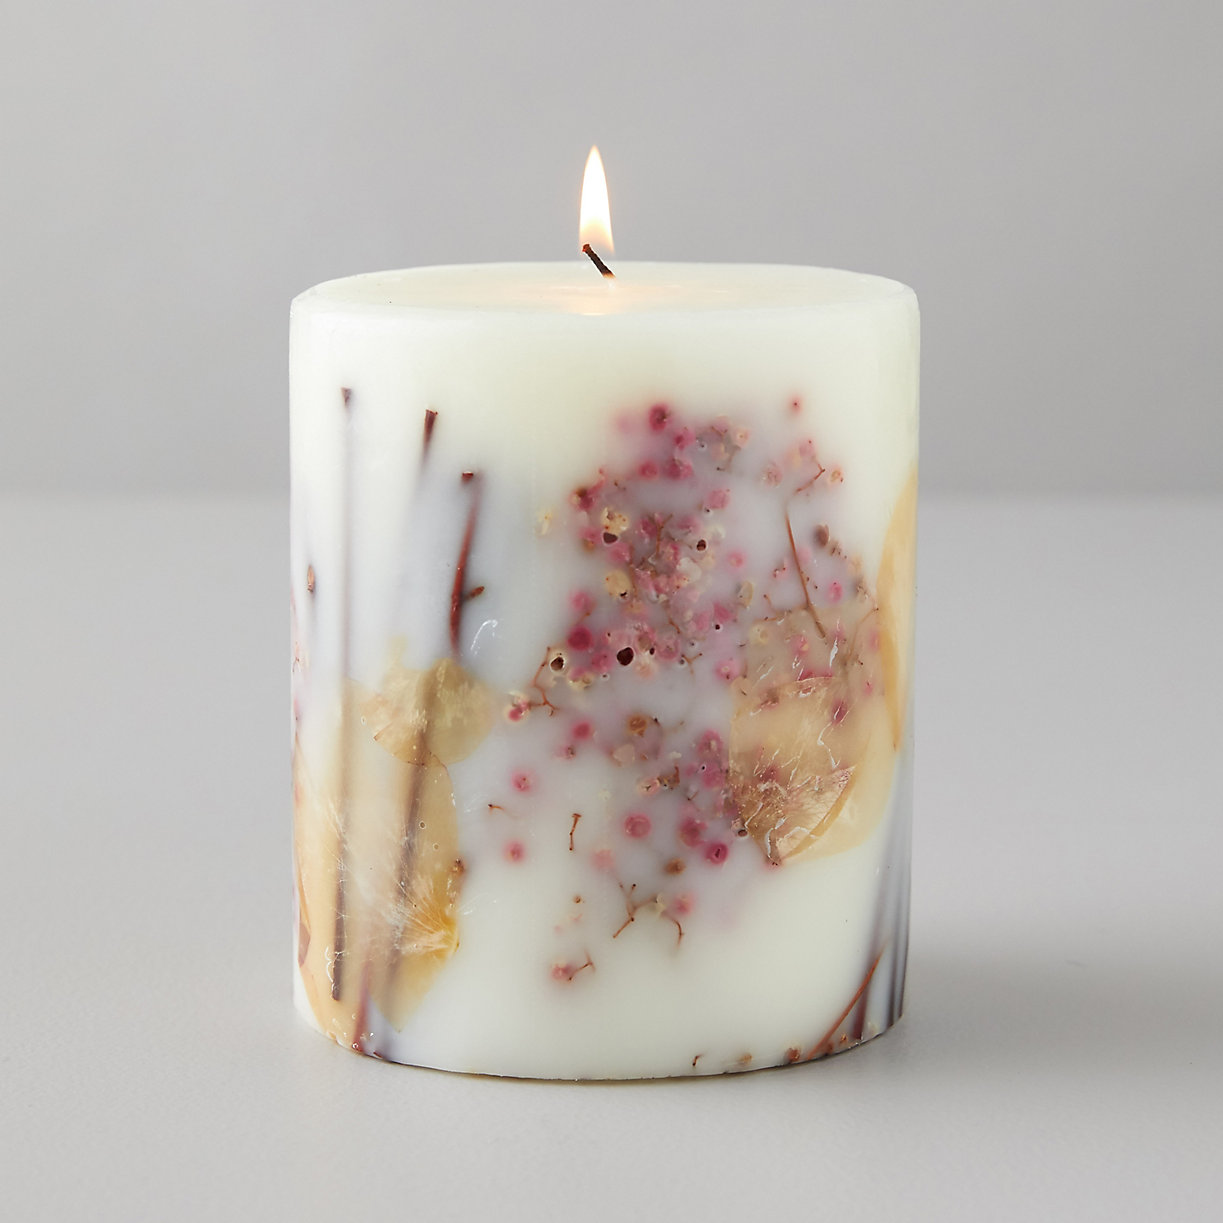 Pressed Botanicals Candle, Apricot Rose